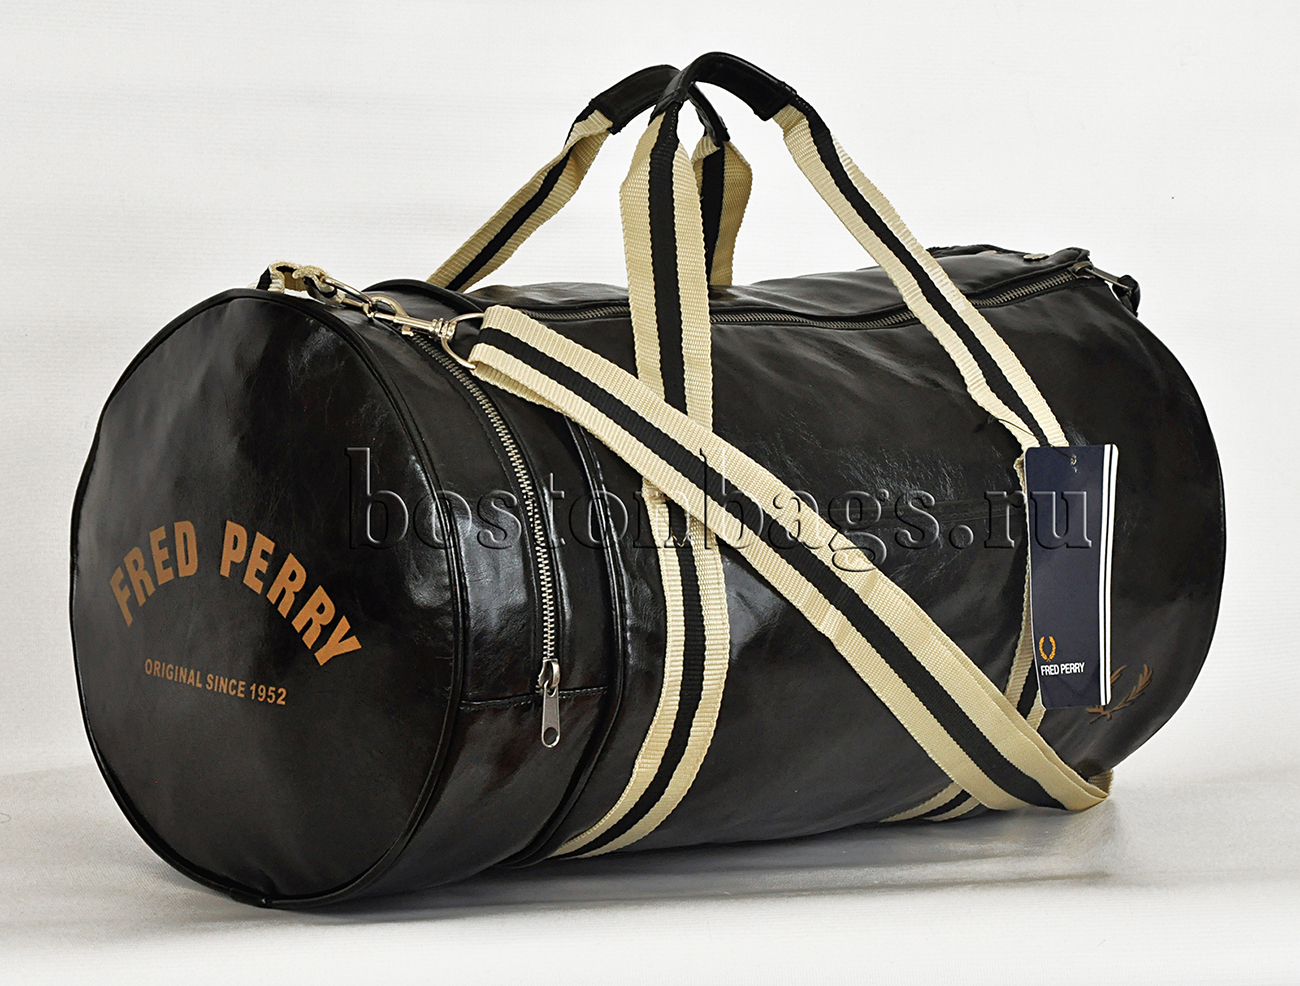 1b751a02452c Спортивная сумка Fred Perry | Boston Bags